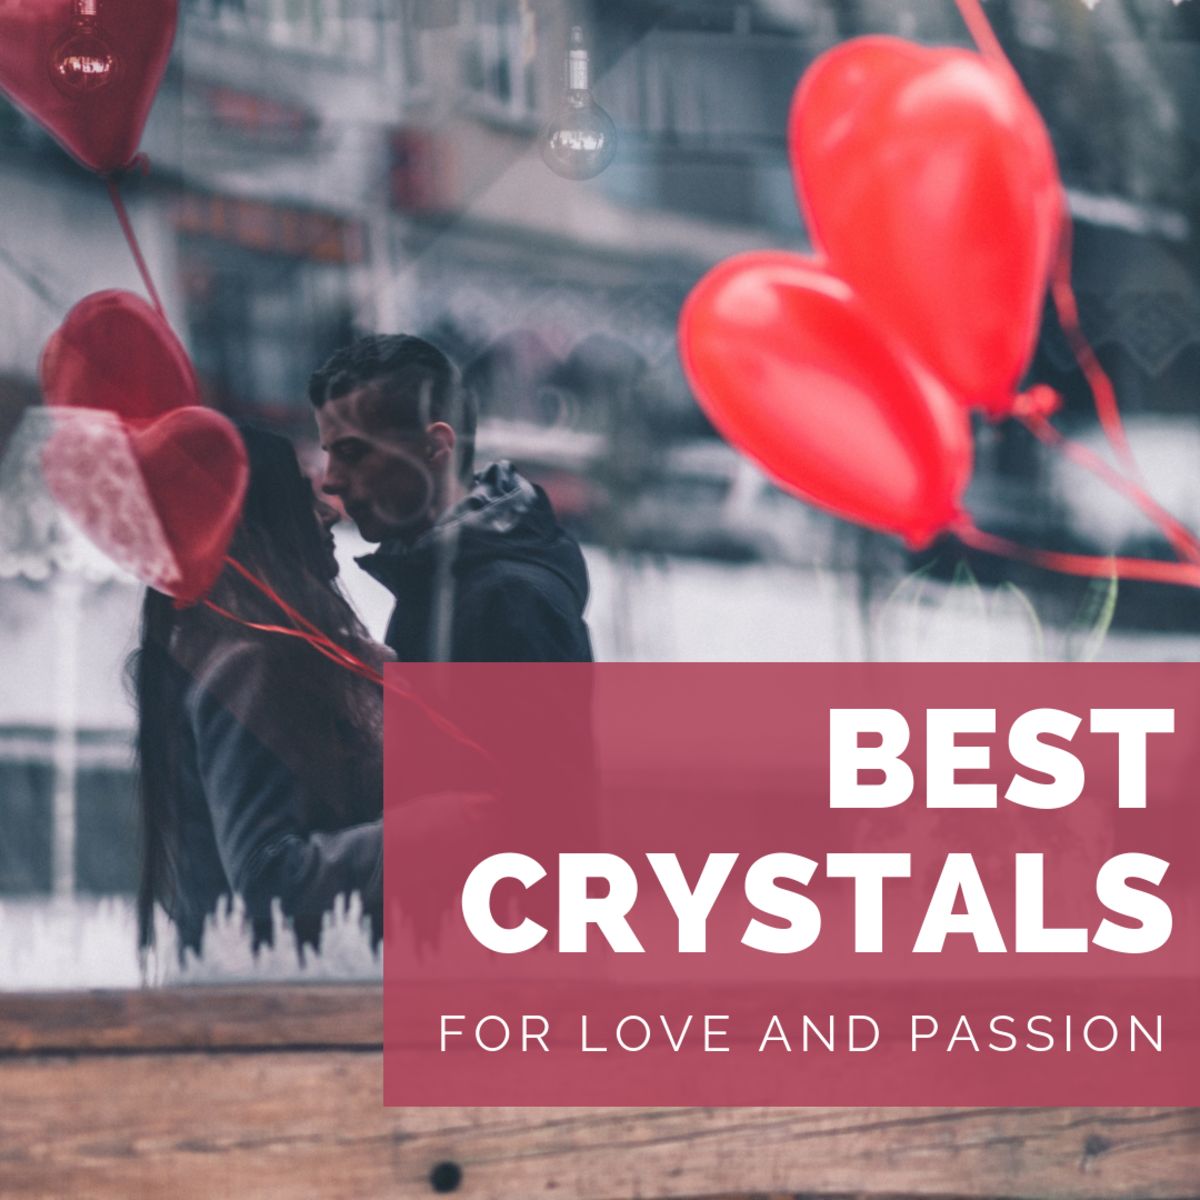 Best Crystals for Attracting and Encouraging Love and Passion